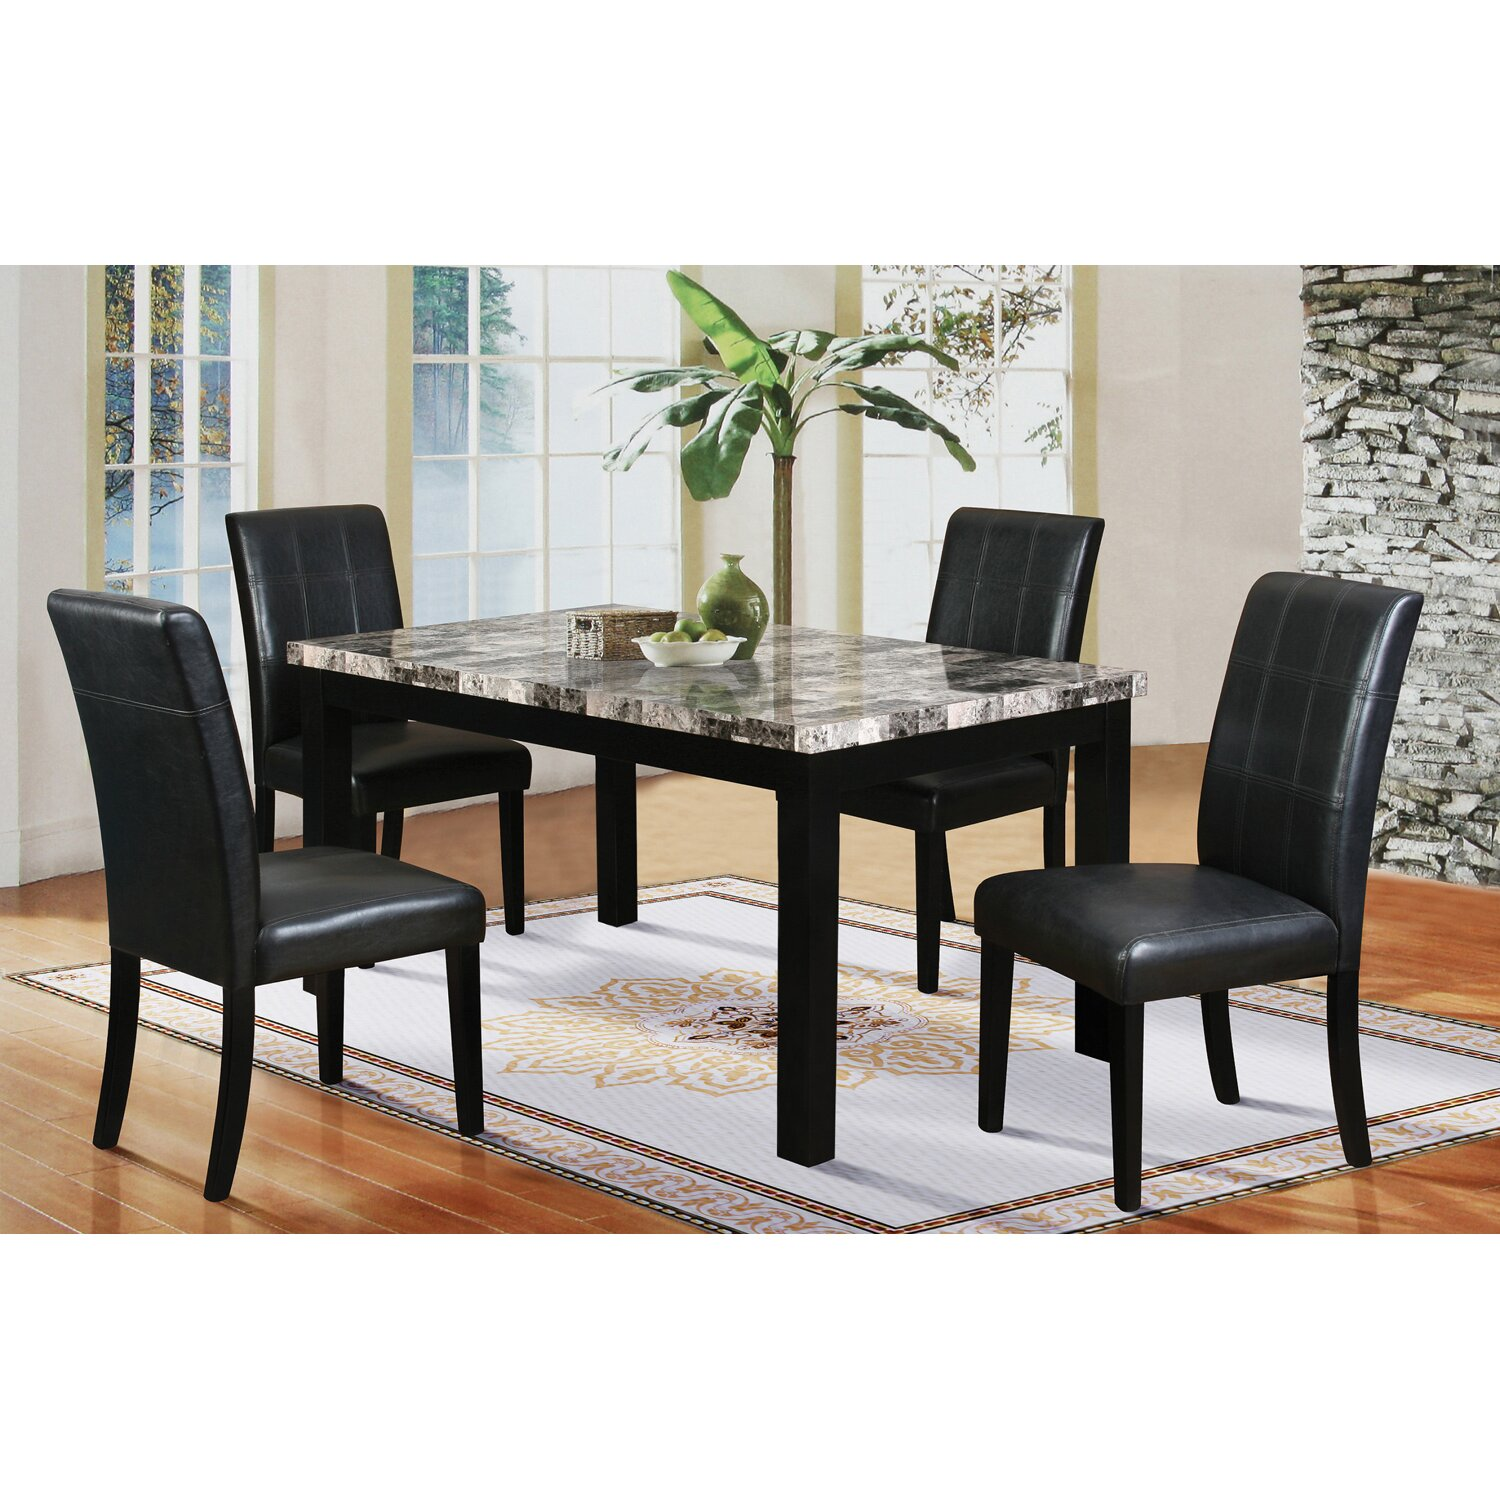 Latitude Run Cahill 5 Piece Dining Set Amp Reviews Wayfair Ca